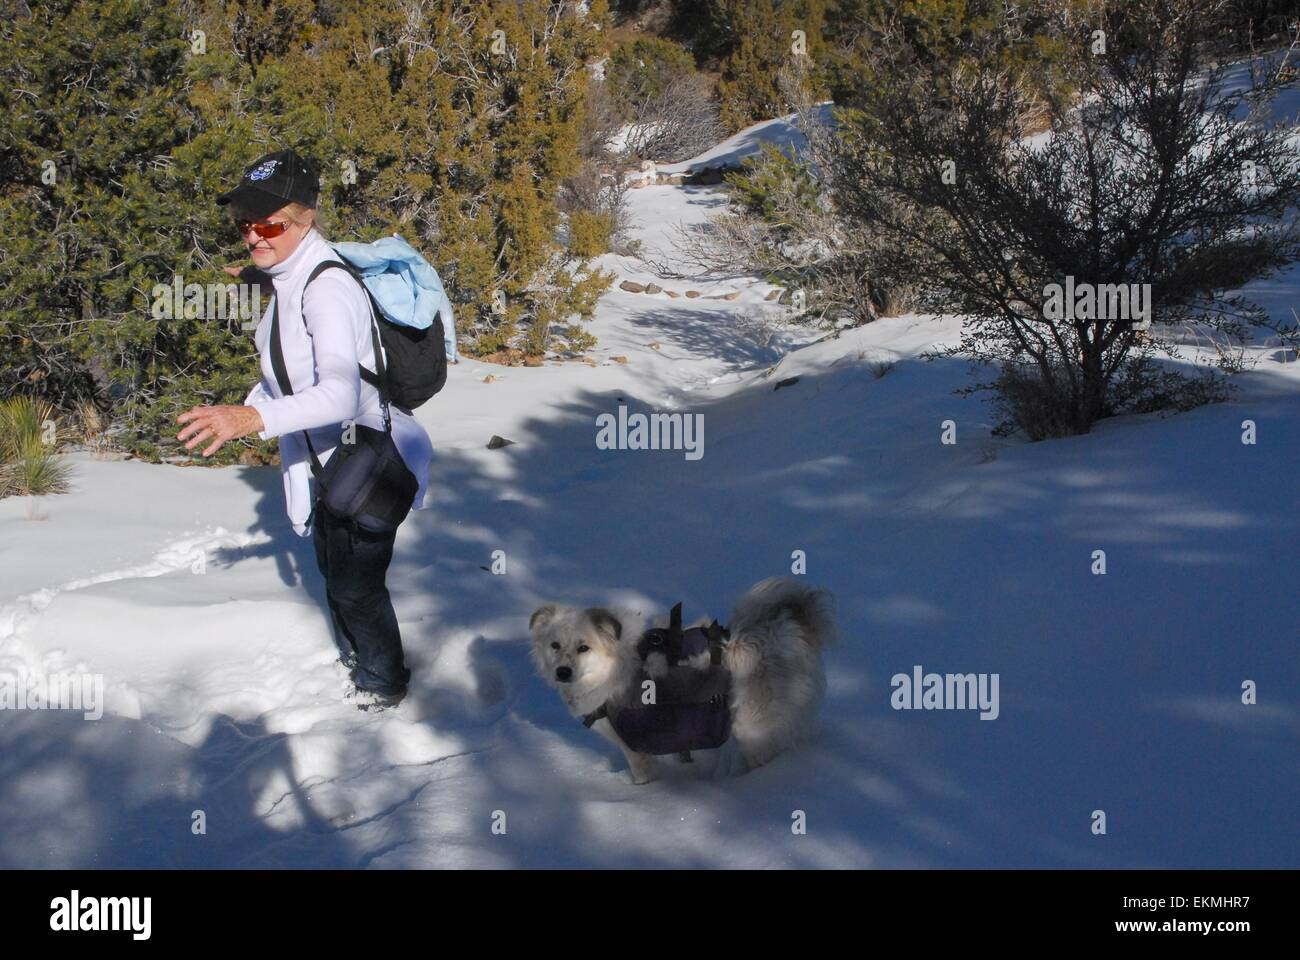 Senior Citizen and her dog on steep snowy section of a trail in Sandia Mountains of New Mexico - USA - Stock Image